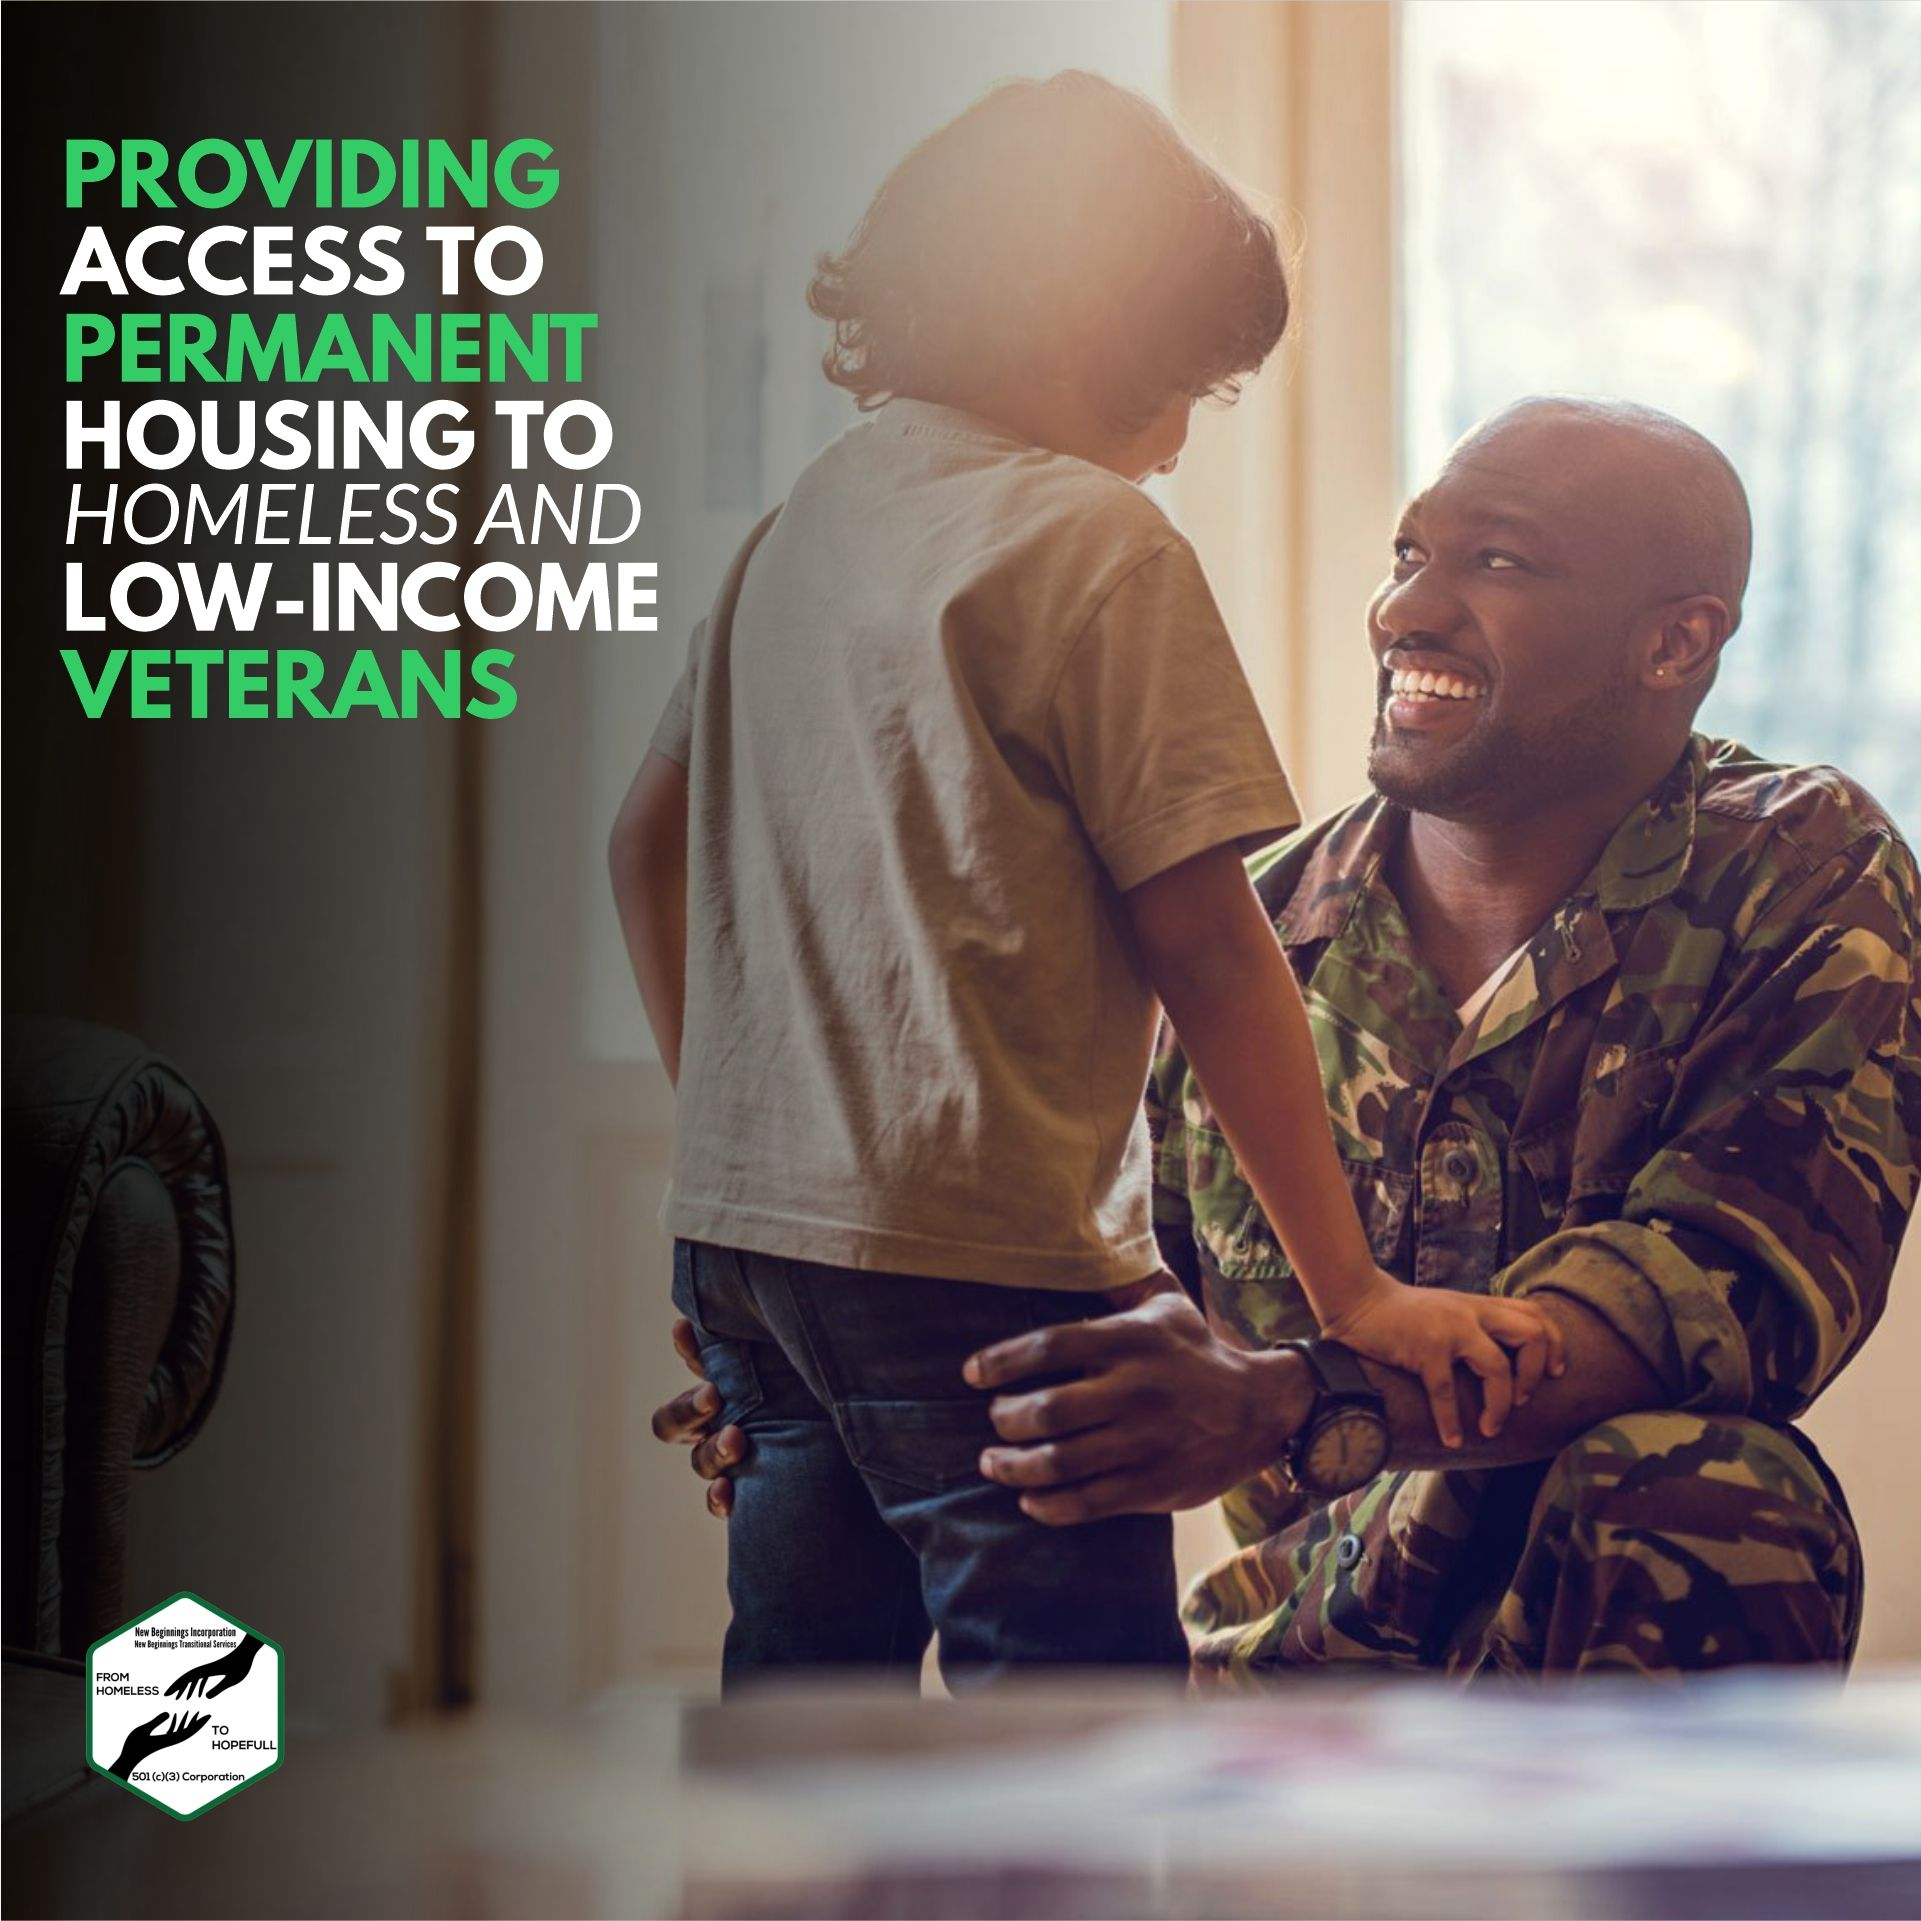 The Community Urban Development Cud Program Has Two Missions One To Provide Access To Permanent Housing To Homele In 2020 Military Veterans Military Family Veteran